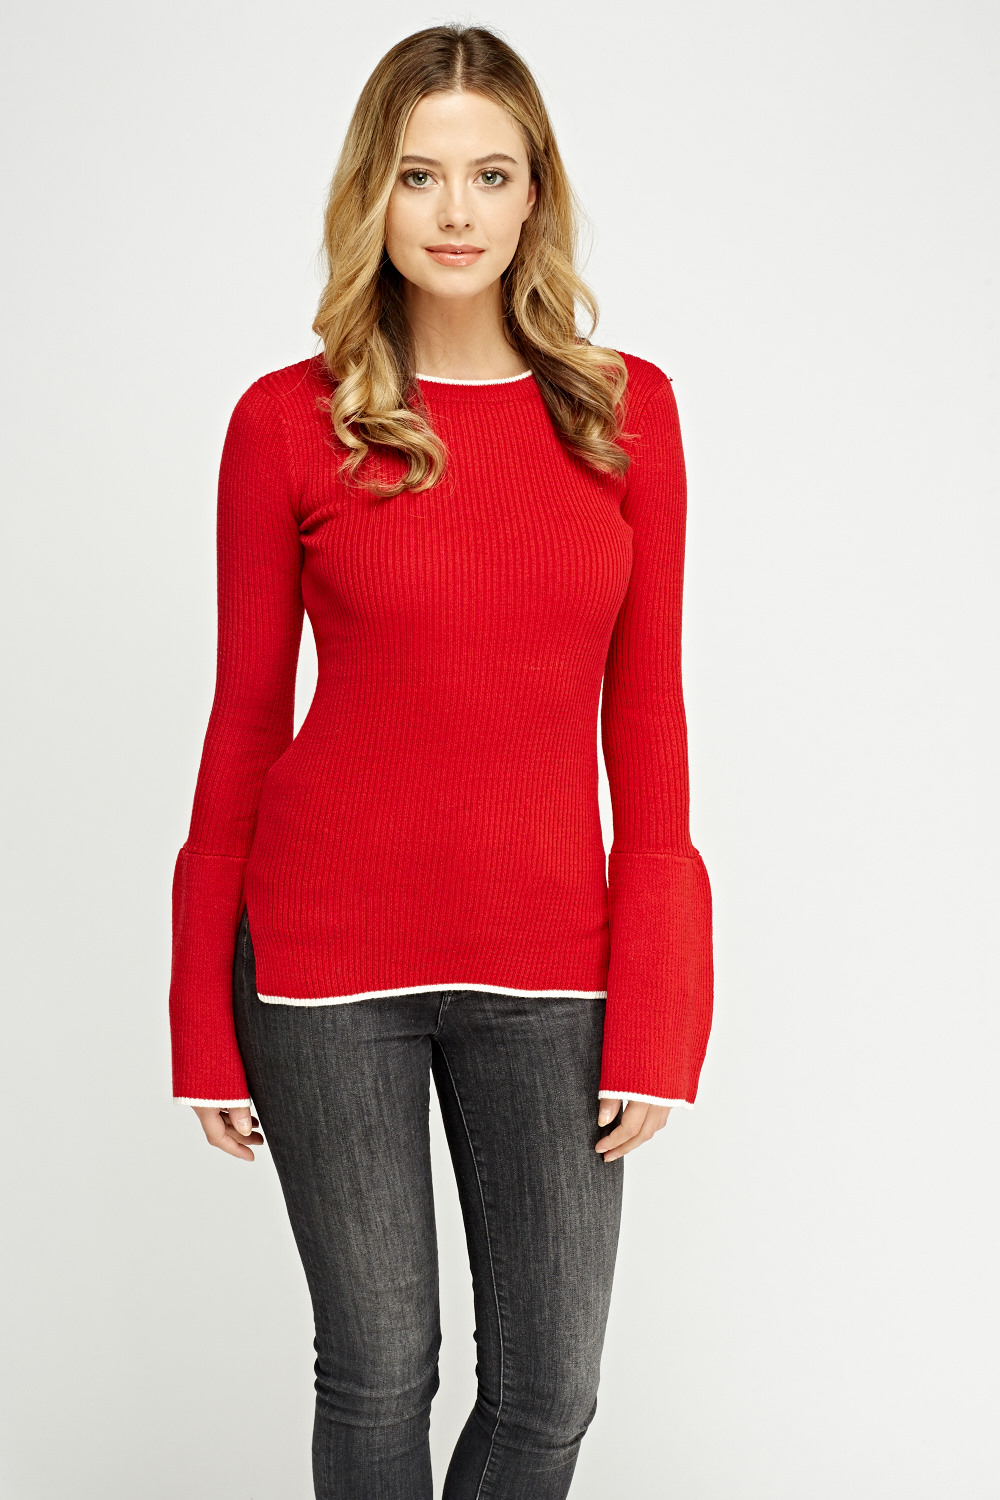 Cheap Women's Knitwear for £5 | Everything5Pounds